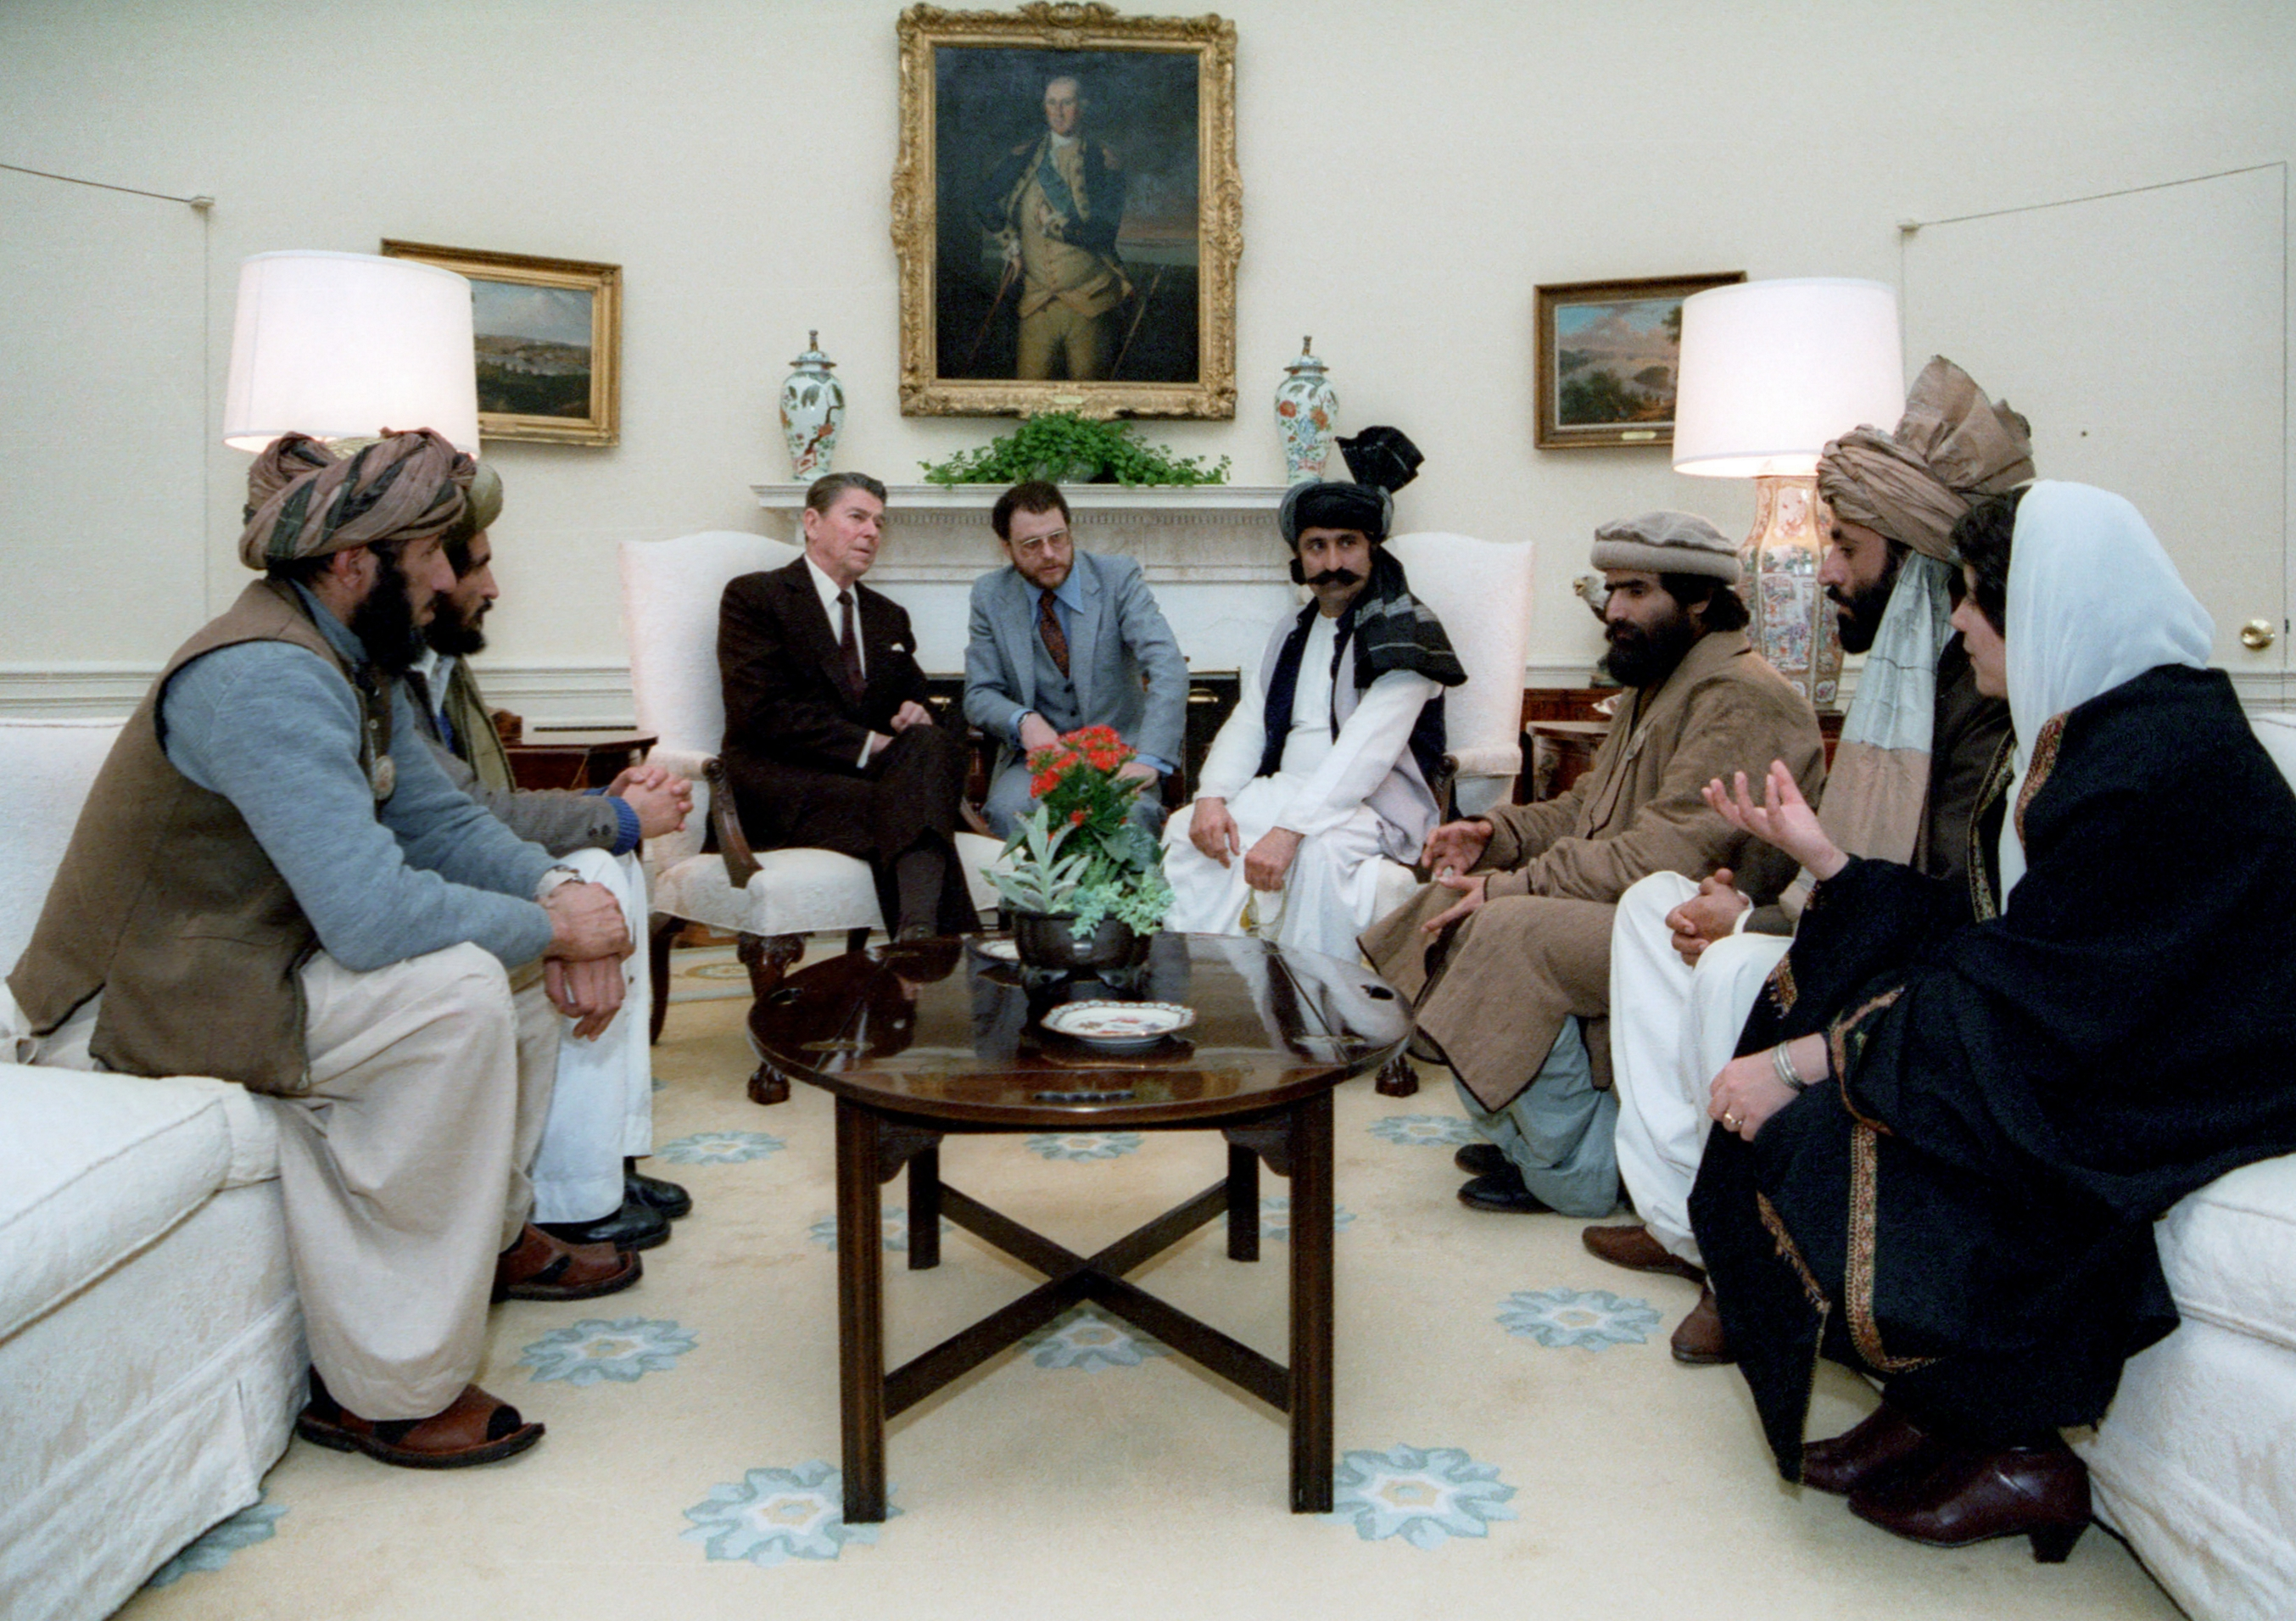 Reagan meeting with Mujahideen, 1983. (Wikimedia Commons)